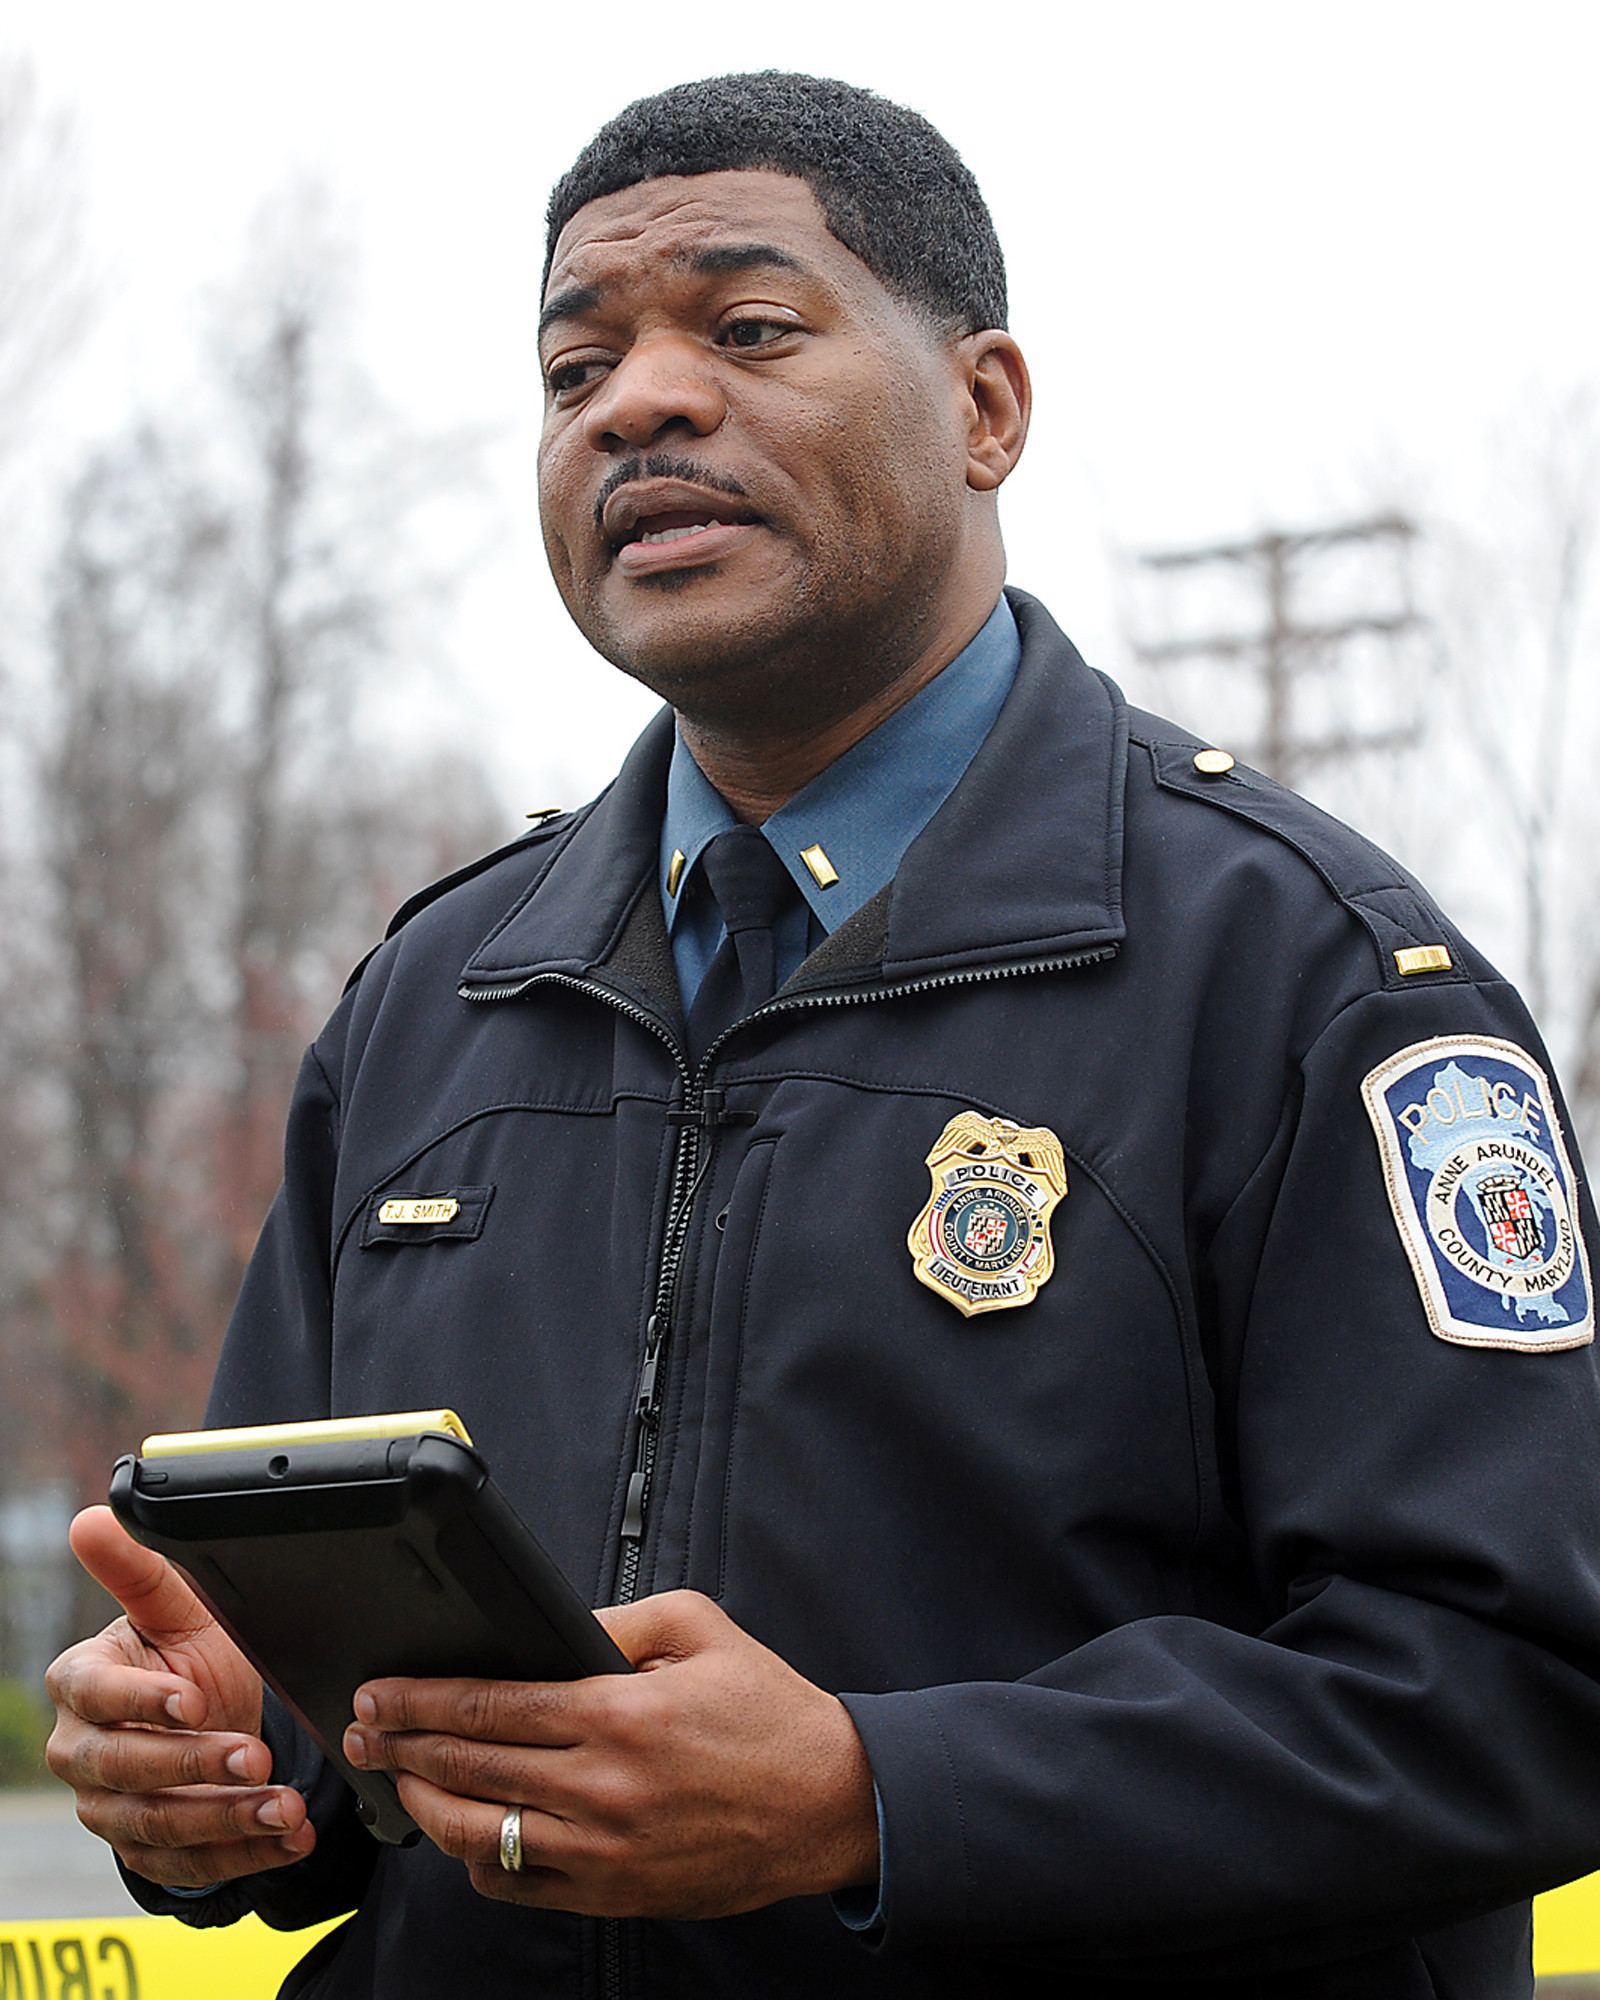 Anne Arundel Police Spokesman Tapped For Position With